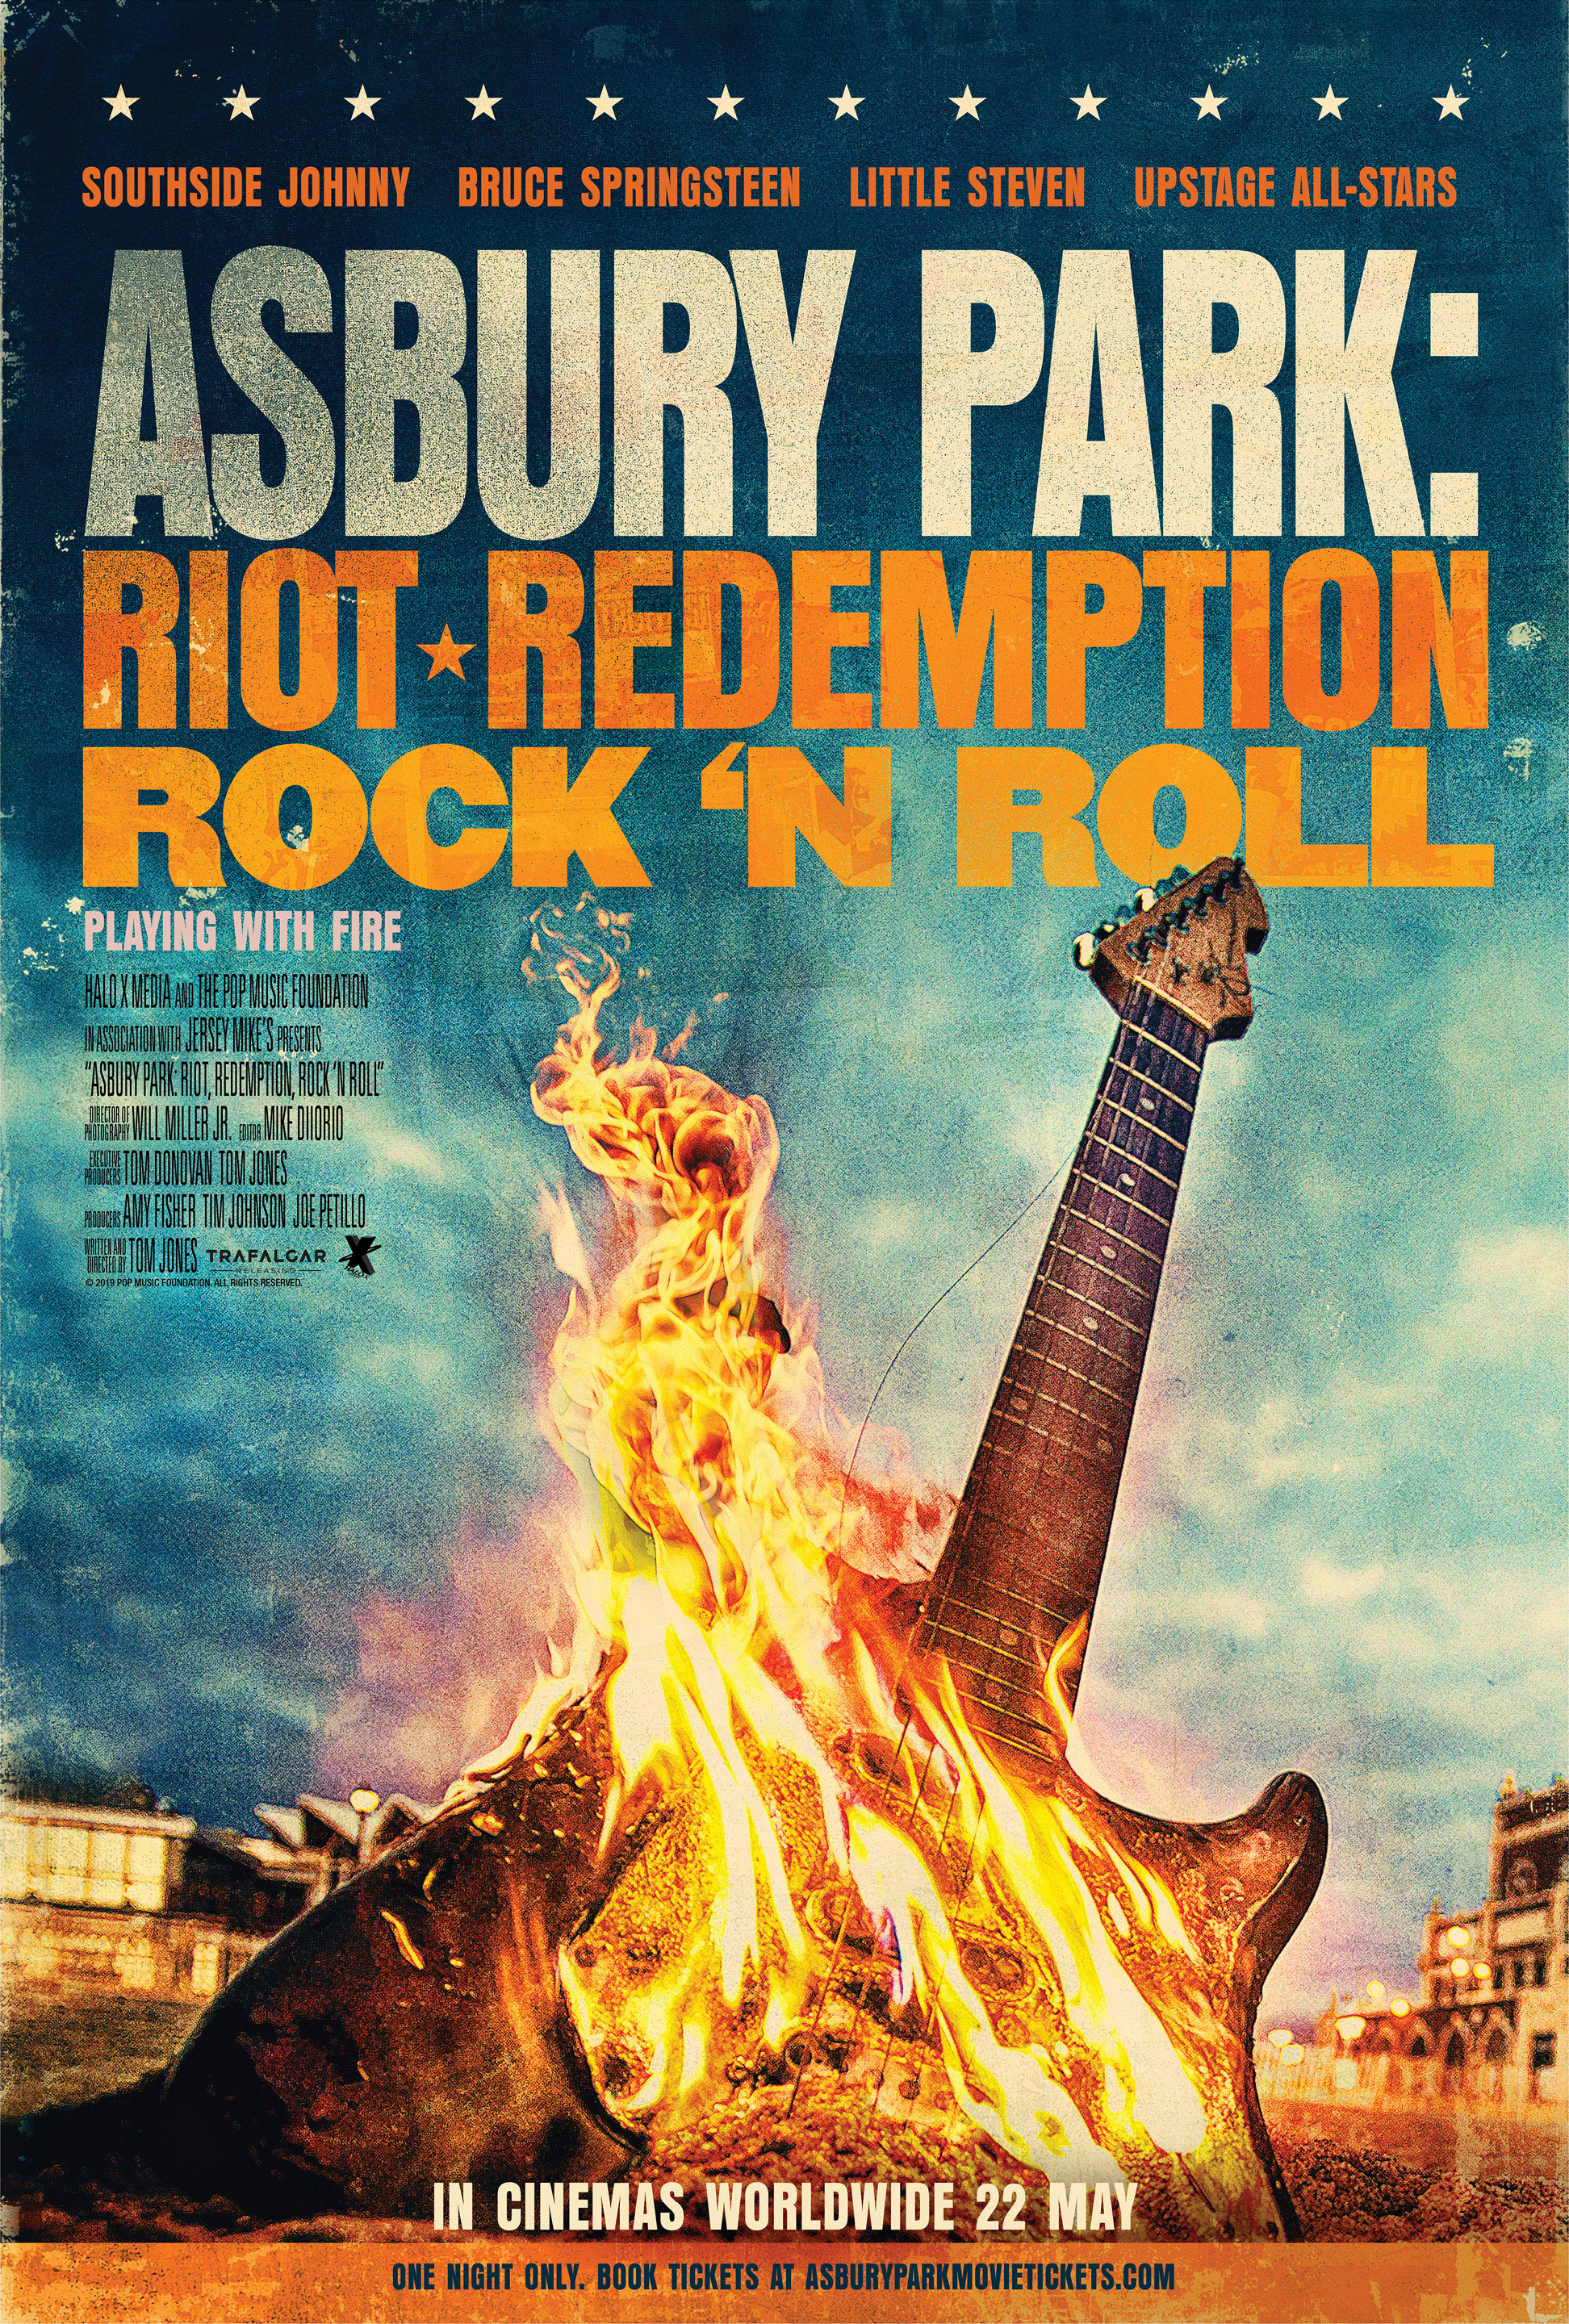 Asbury Park: Riot, Redemption, Rock 'N Roll Poster